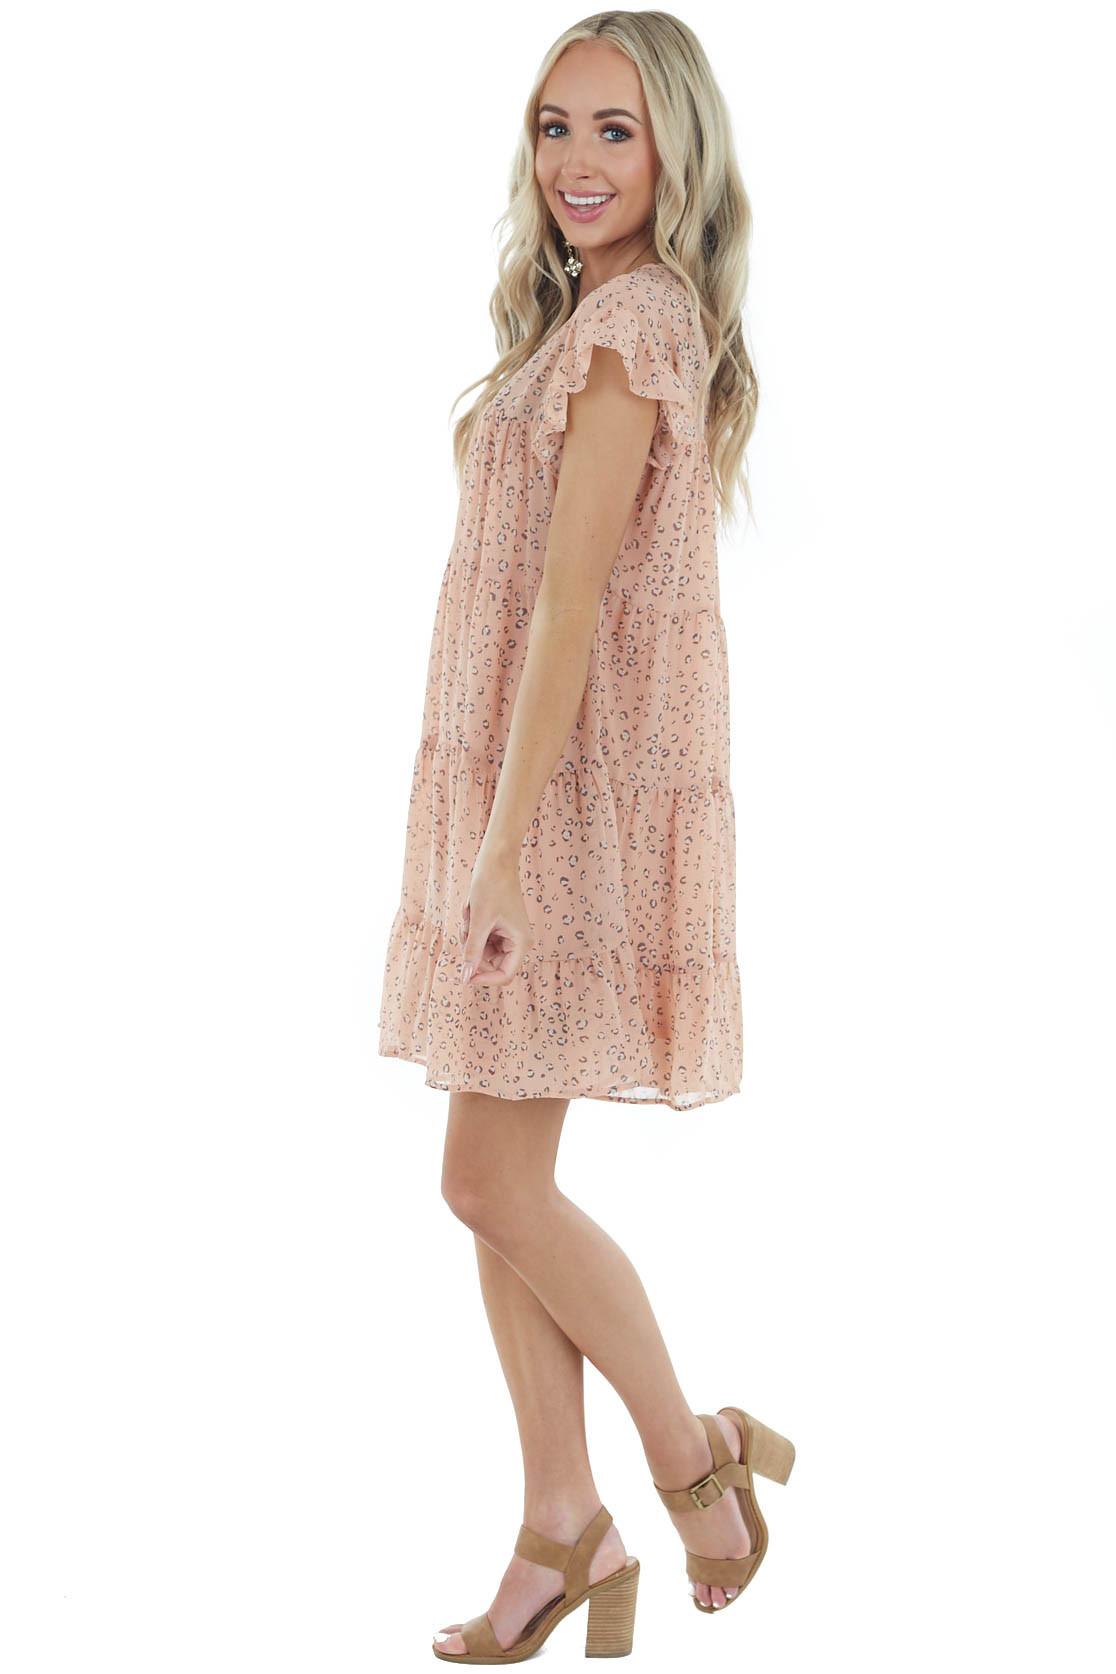 Peach Leopard Print Tiered Dress with Short Ruffled Sleeves